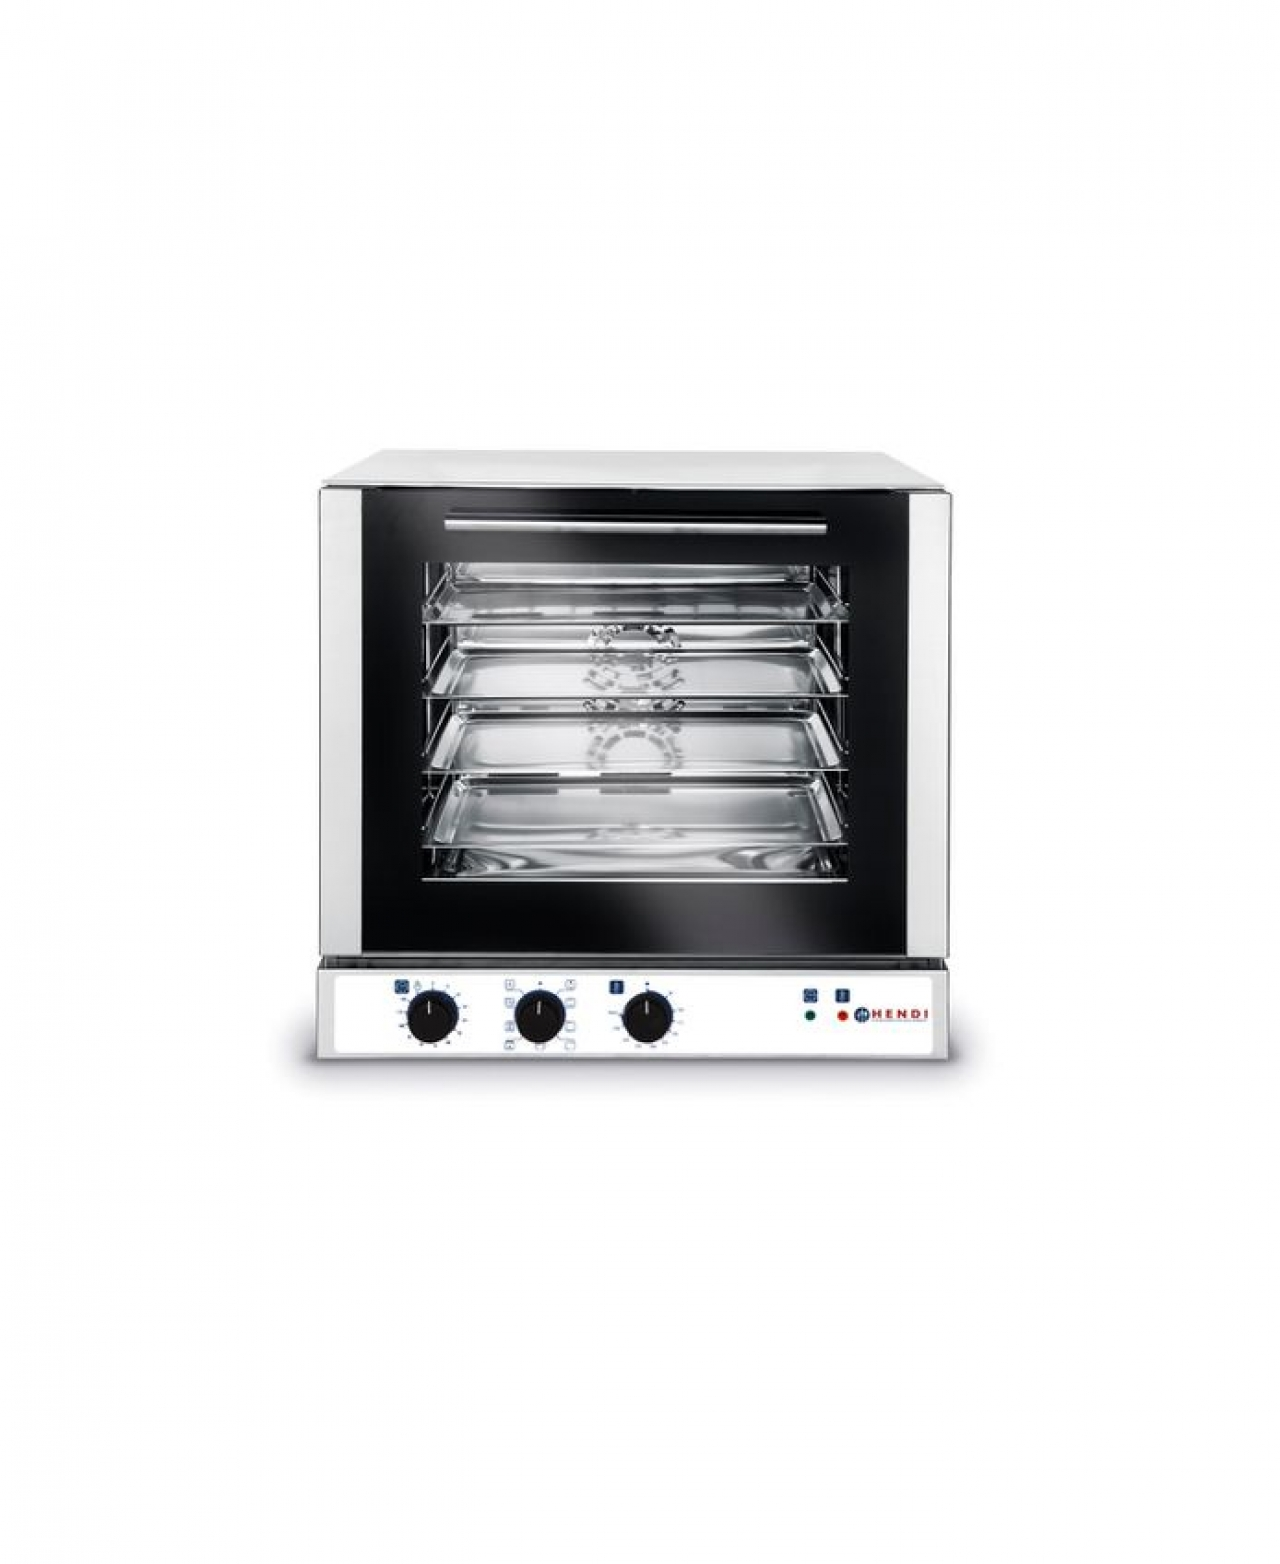 CONVECTION OVEN 4x 429x345mm